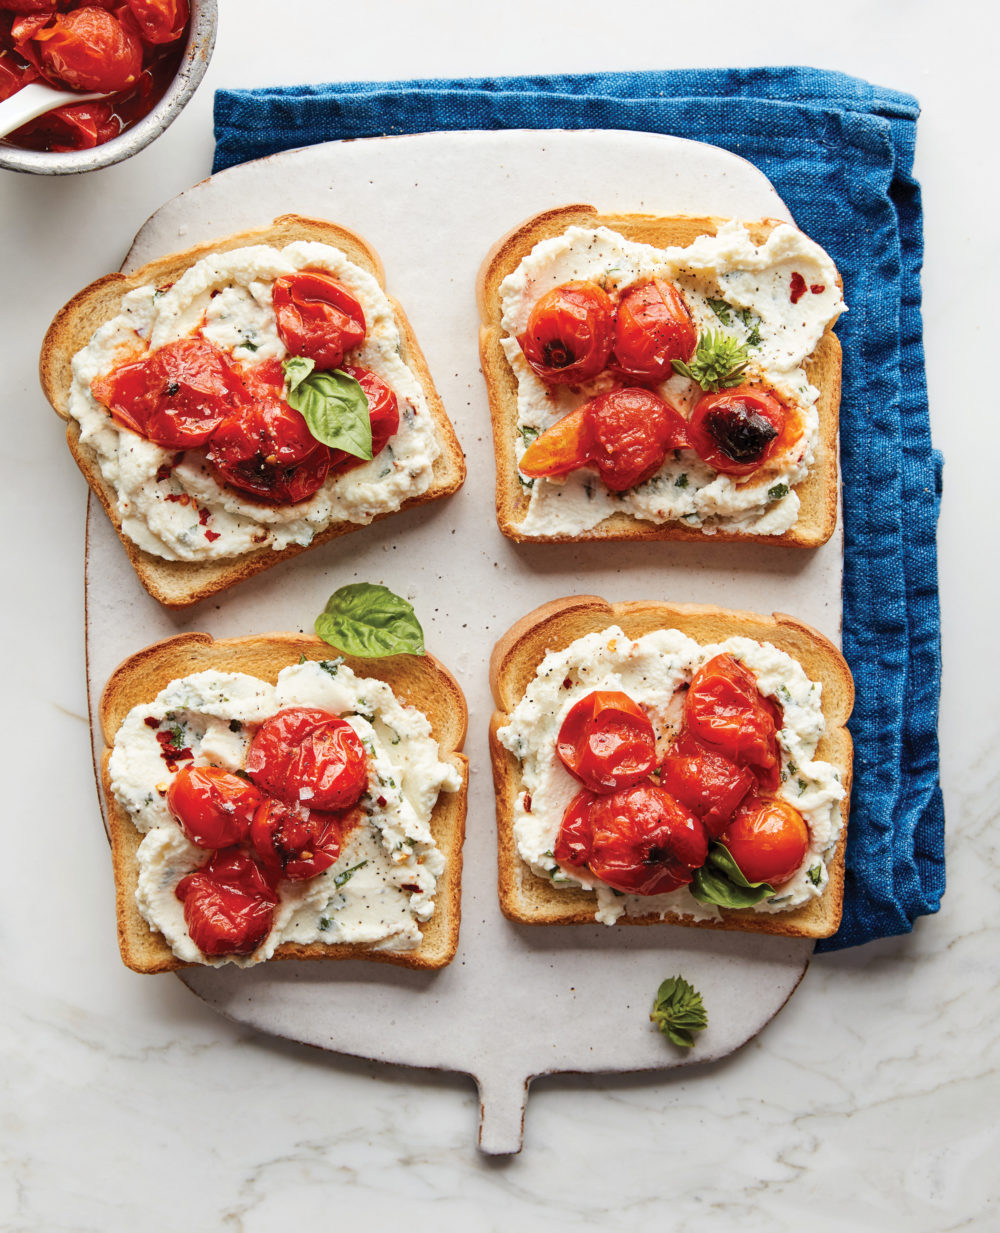 Tomato Ricotta Toast with Basil shown on a white plate over a turquoise napkin.